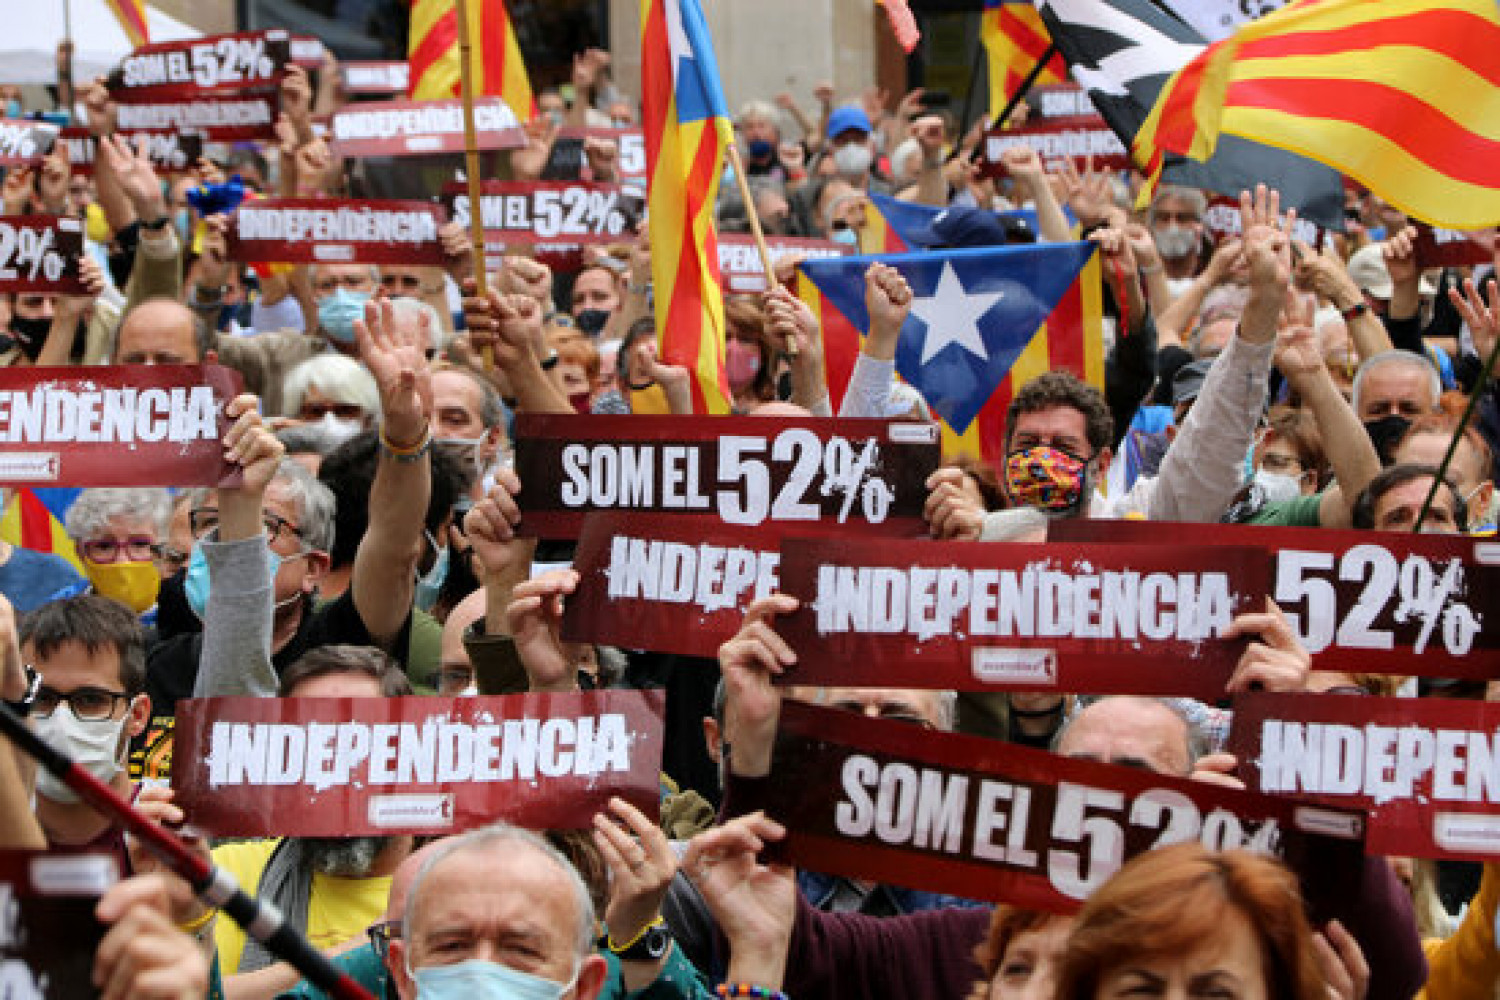 Demonstrators in Barcelona with placards reading 'We are the 52%' and 'Independence', May 16, 2021 (by Gemma Sánchez)